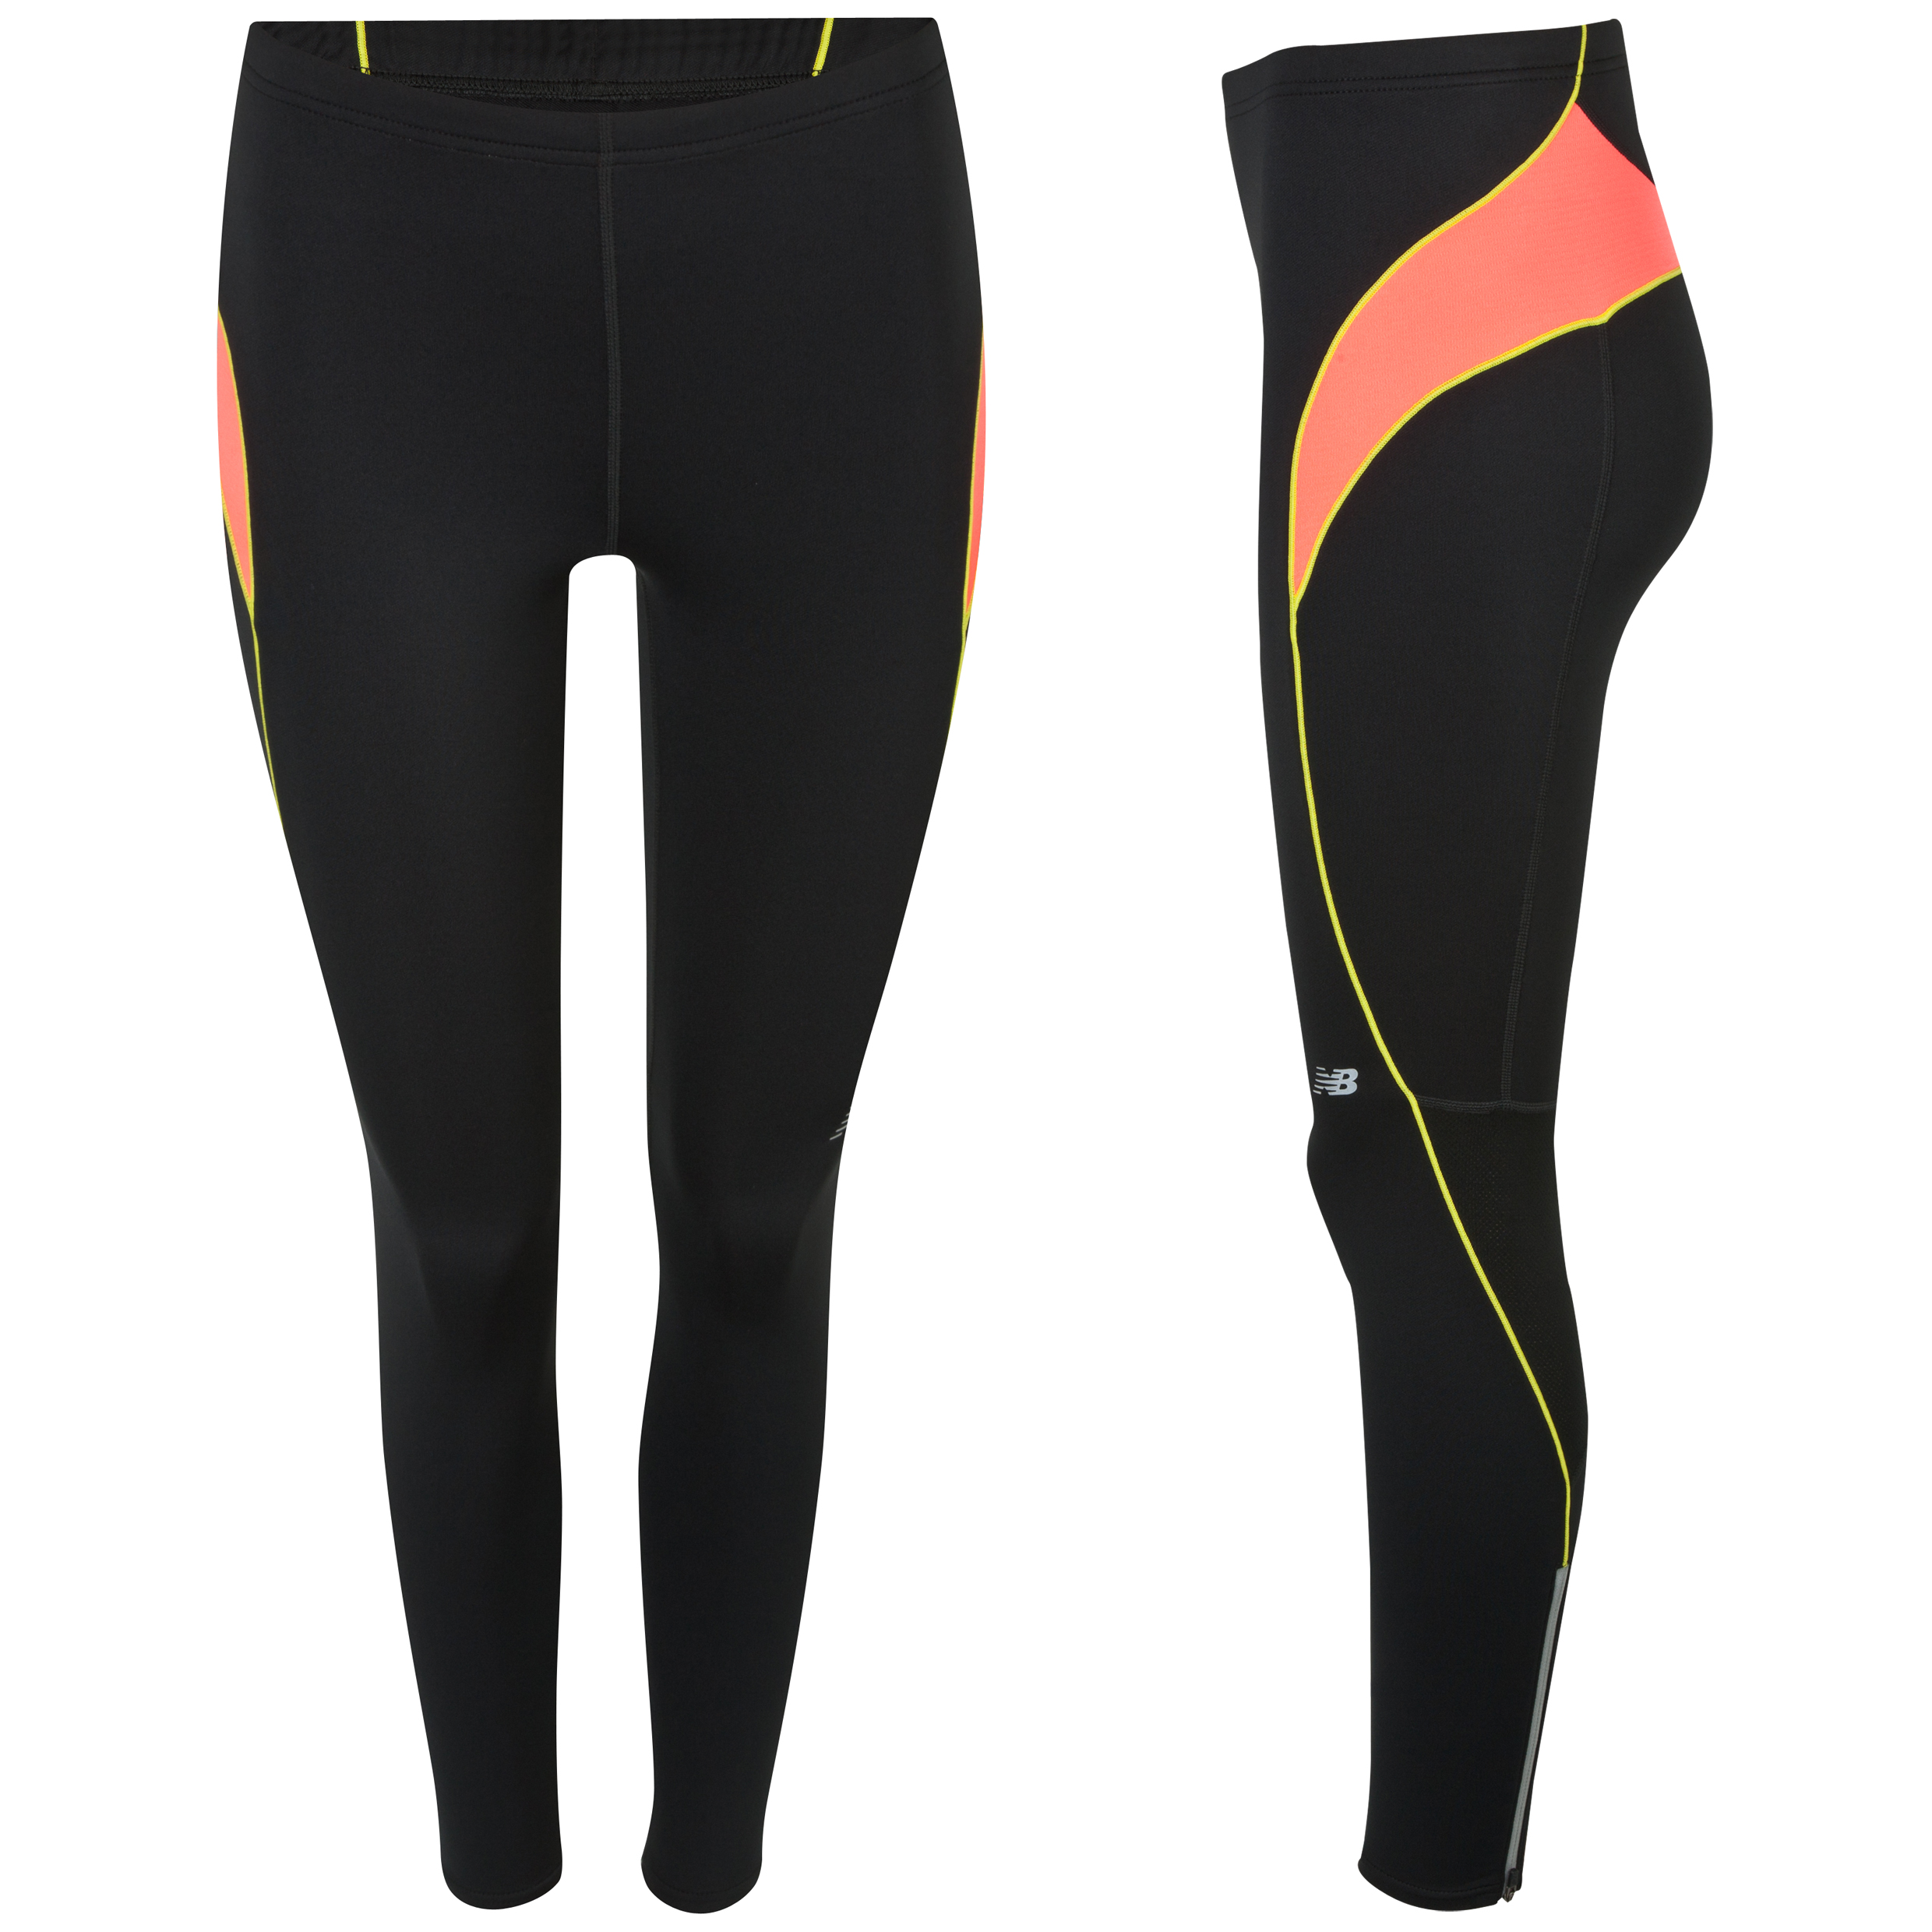 New Balance Momentum Tight - Fiery Coral - Womens